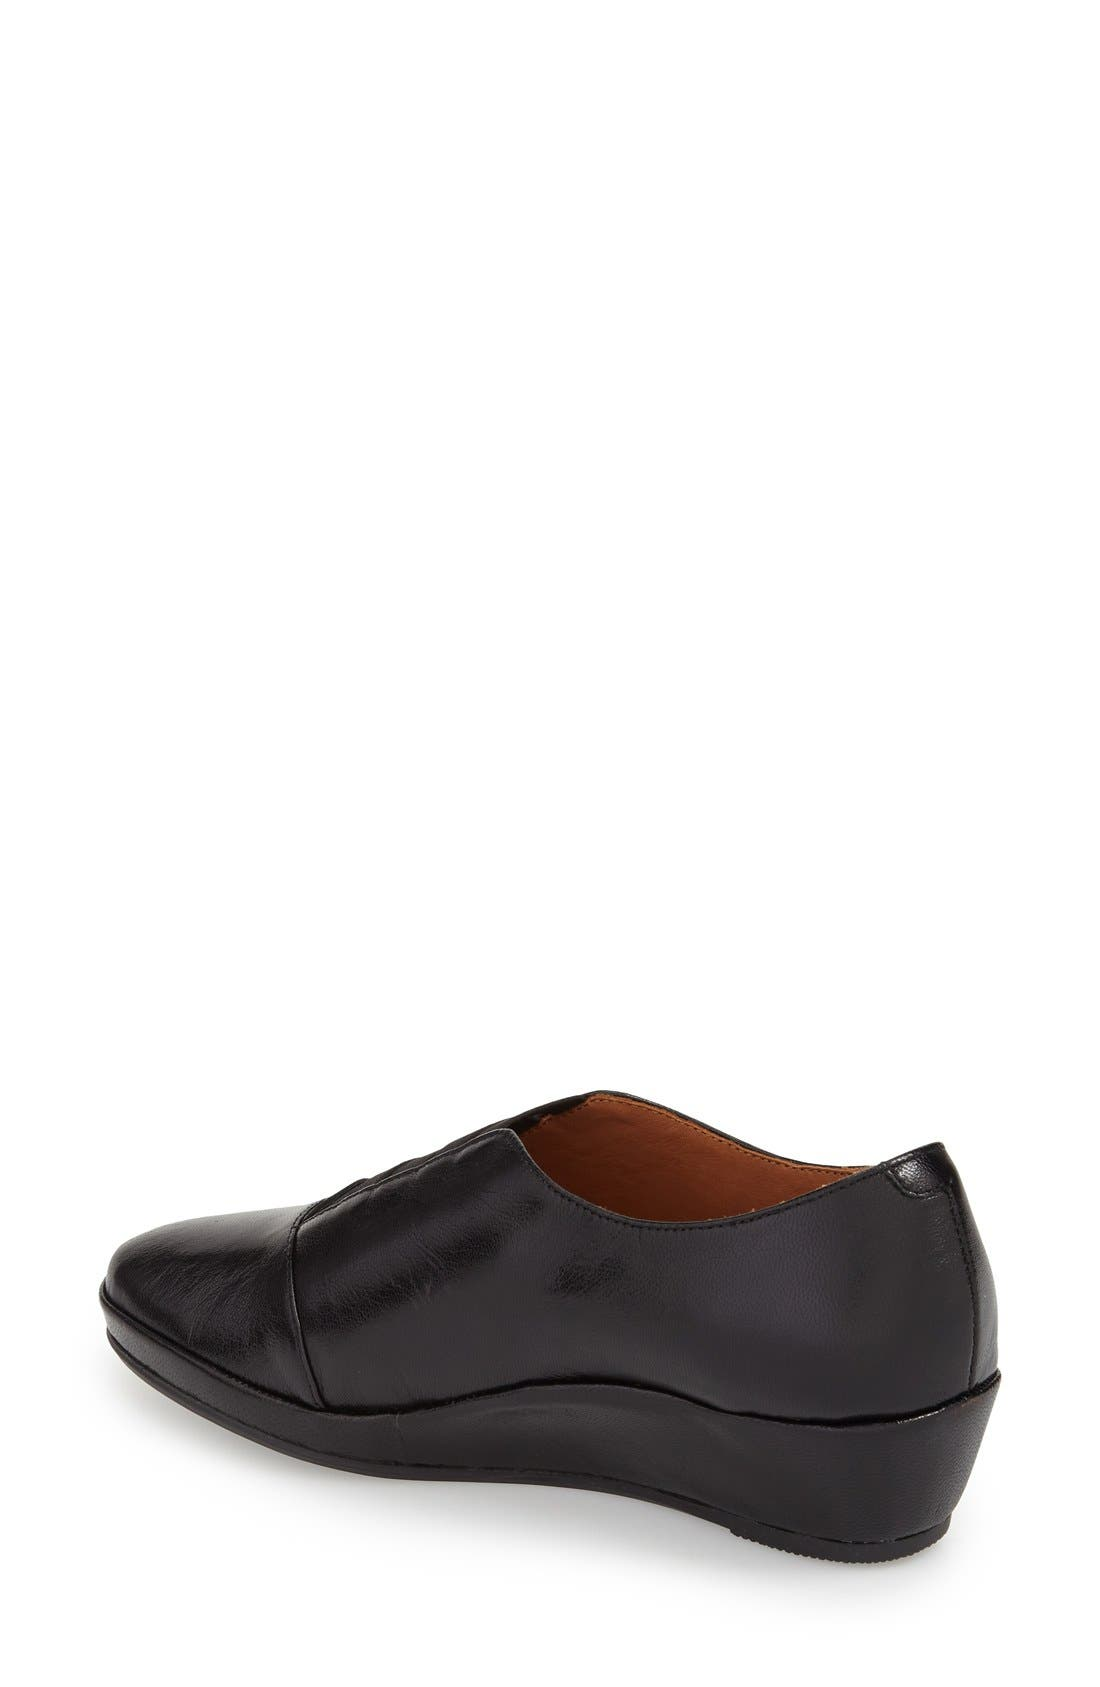 'Beziers' Slip-On,                             Alternate thumbnail 2, color,                             Black Leather